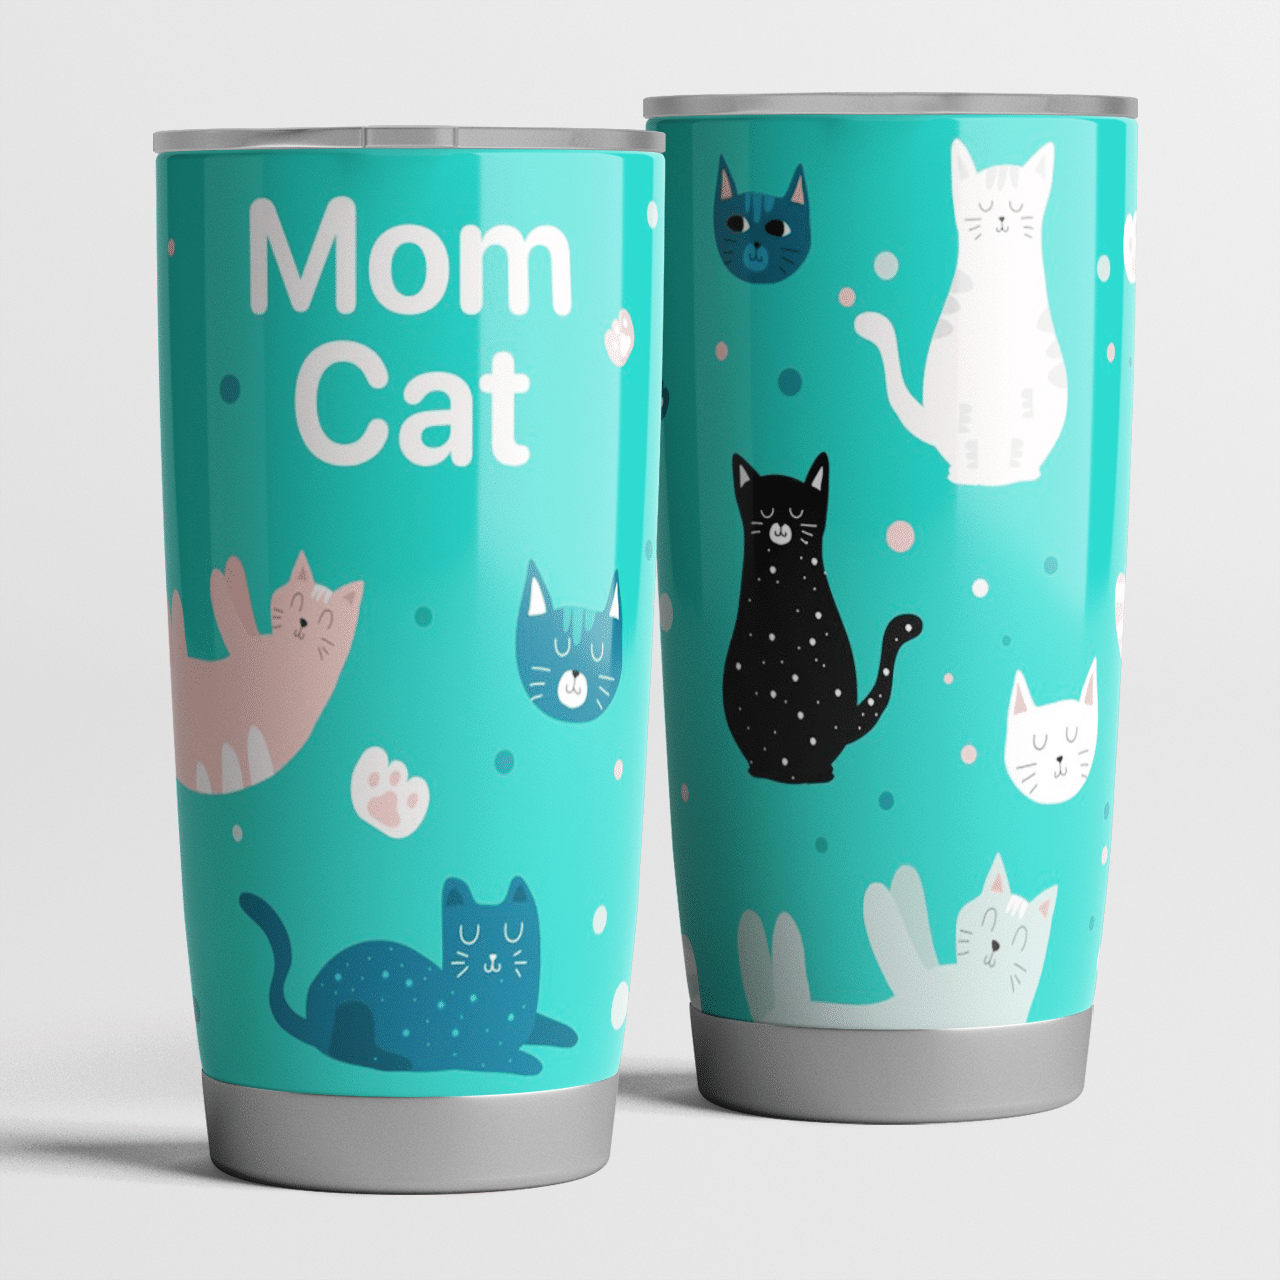 Mom Cat - Cats Lover Gift - Tumbler